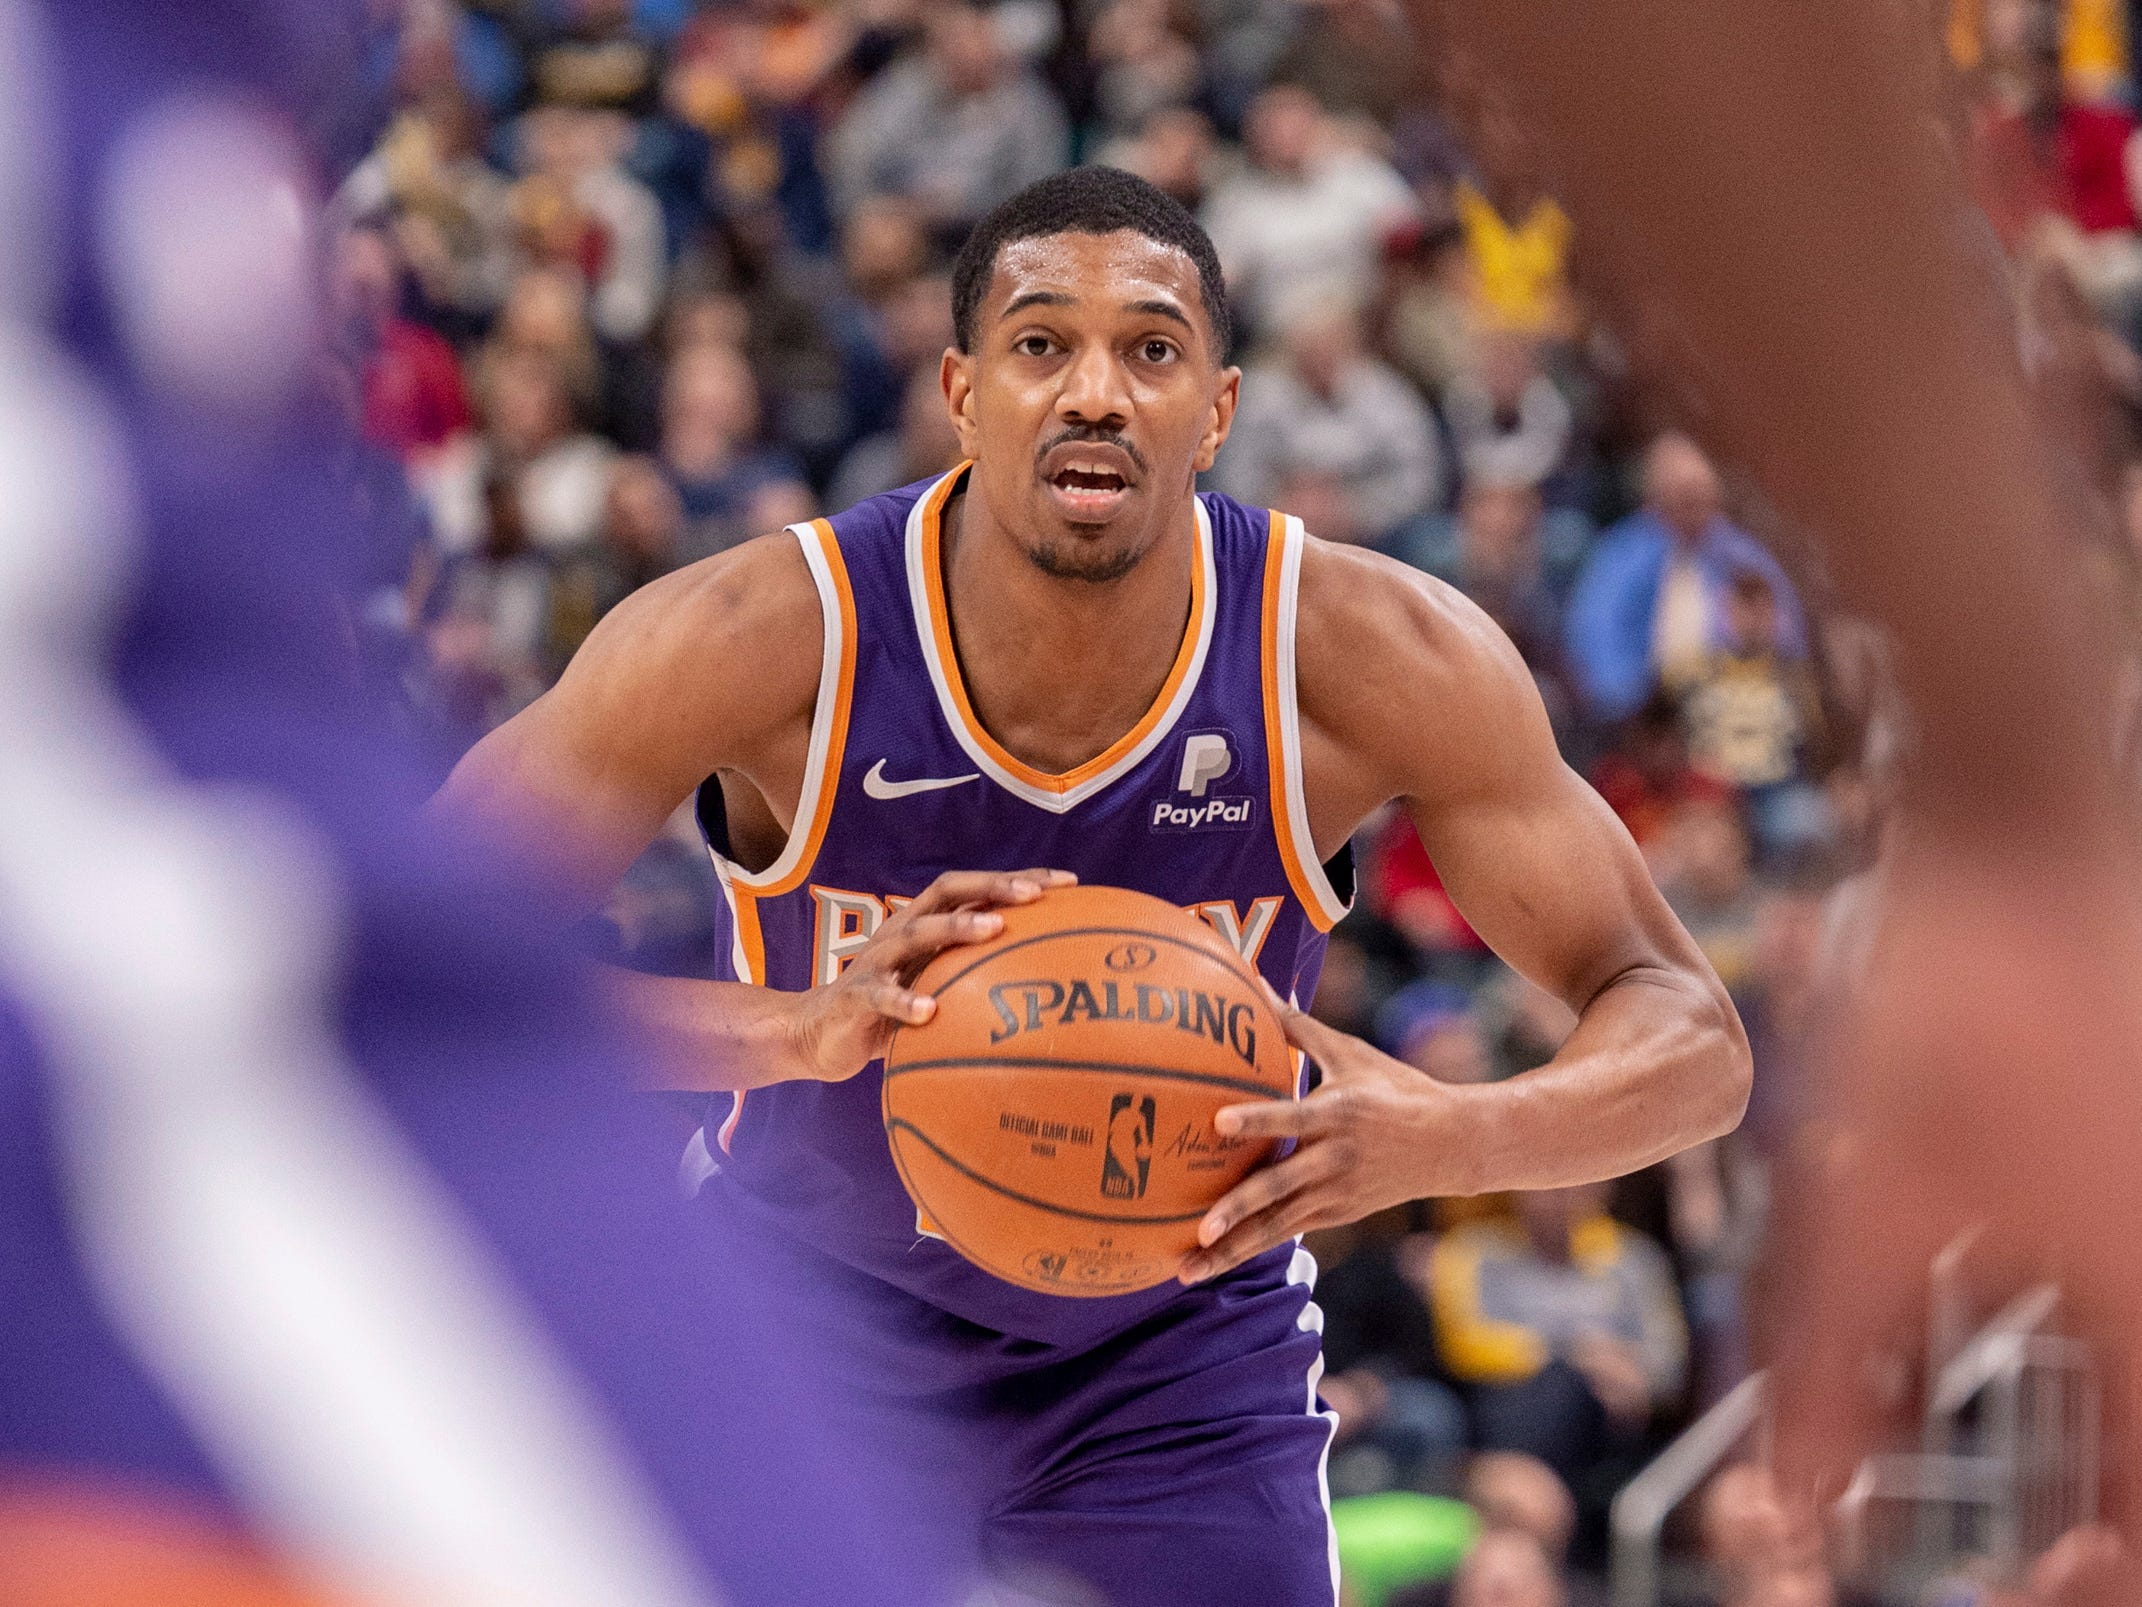 Phoenix Suns guard De'Anthony Melton (14) looks to pass the ball to a teammate during the first half of the team's NBA basketball game against the Indiana Pacers on Tuesday, Jan. 15, 2019, in Indianapolis.